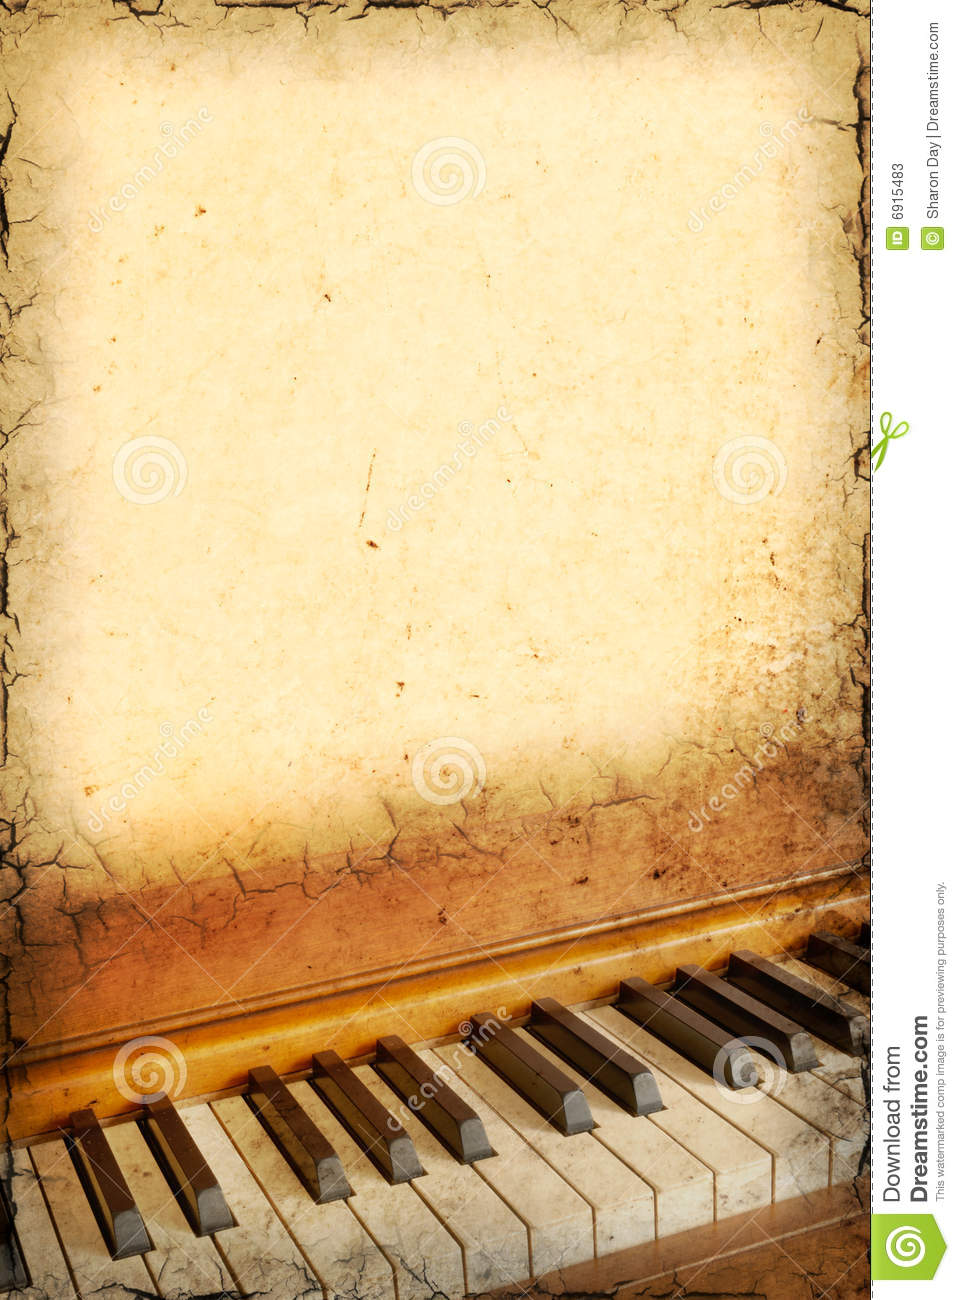 Grunge background of piano keys with room for text.